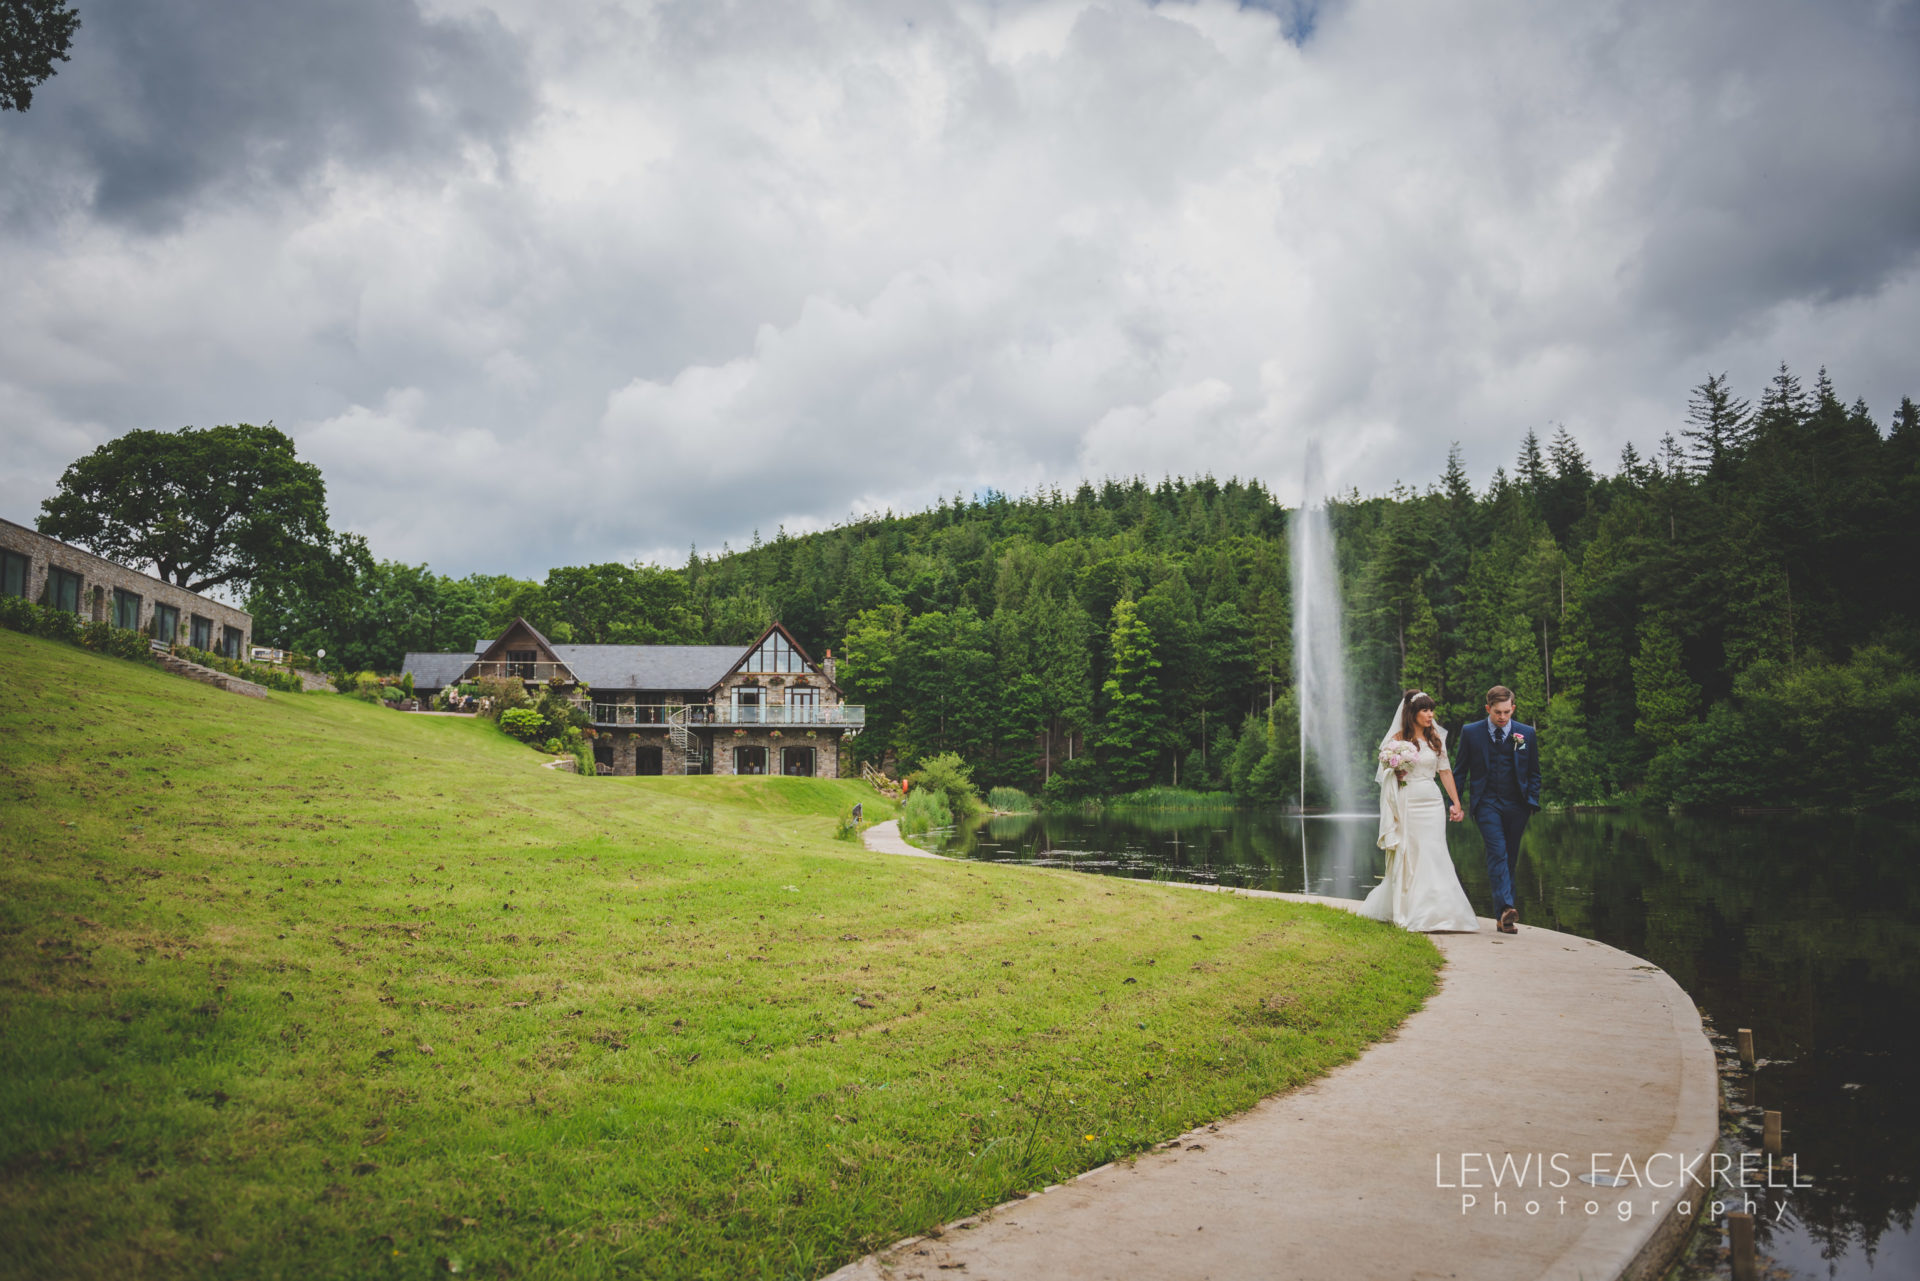 Lewis-Fackrell-Photography-Wedding-Photographer-Cardiff-Swansea-Bristol-Newport-Pre-wedding-photoshoot-cerian-dan-canada-lake-lodge-llantrisant--52